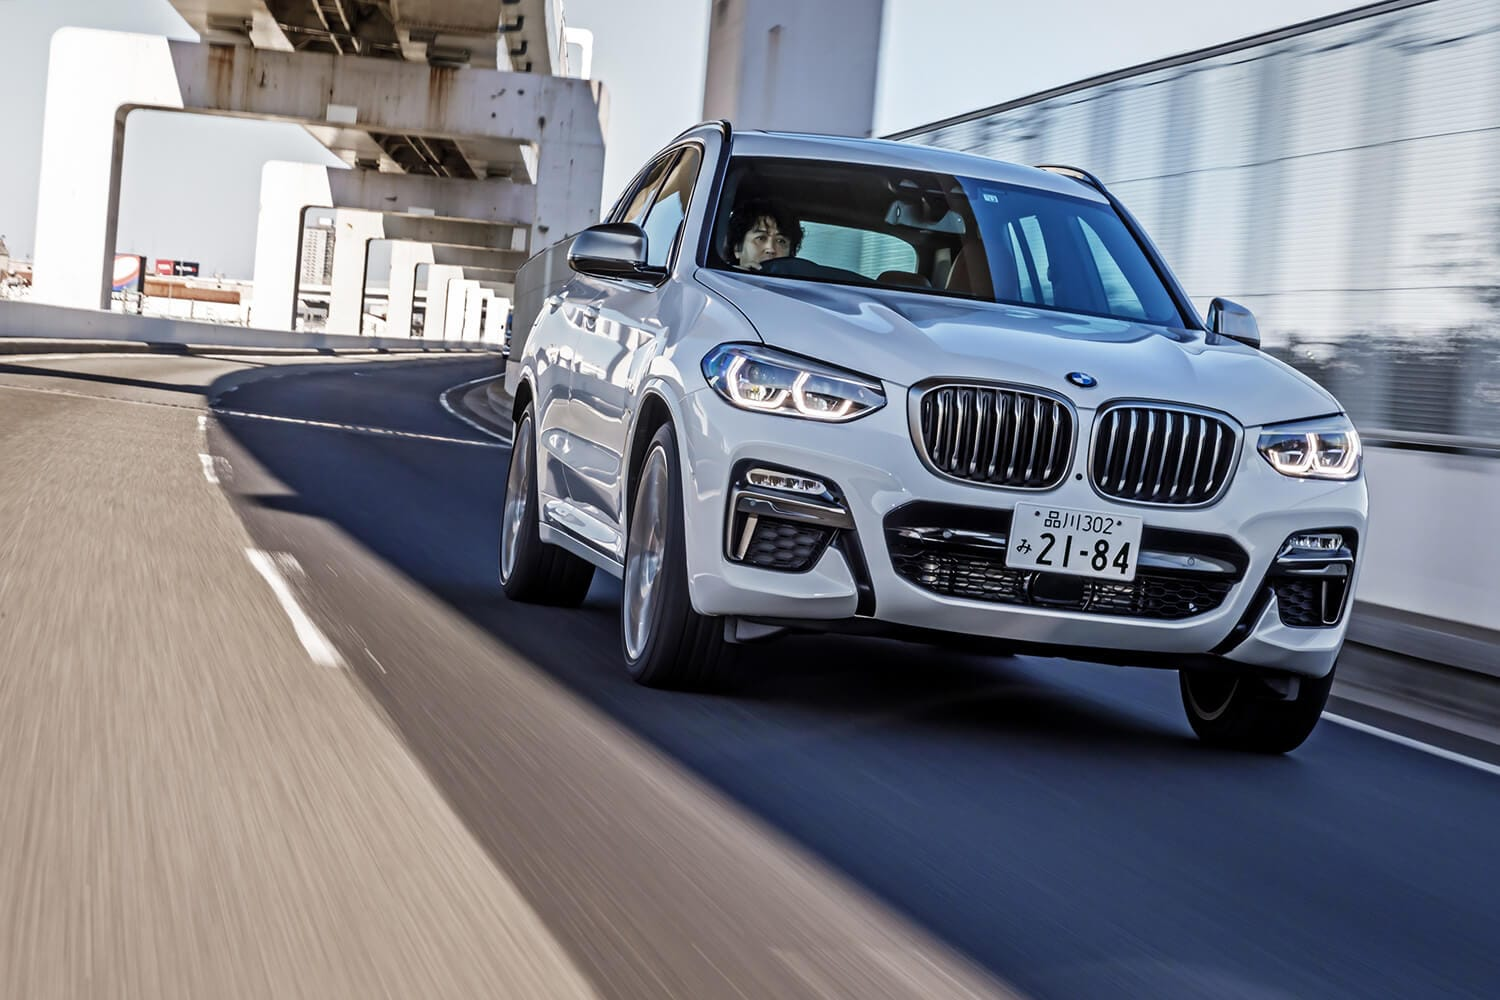 【試乗記】BMW X3 M40d(4WD/8AT)